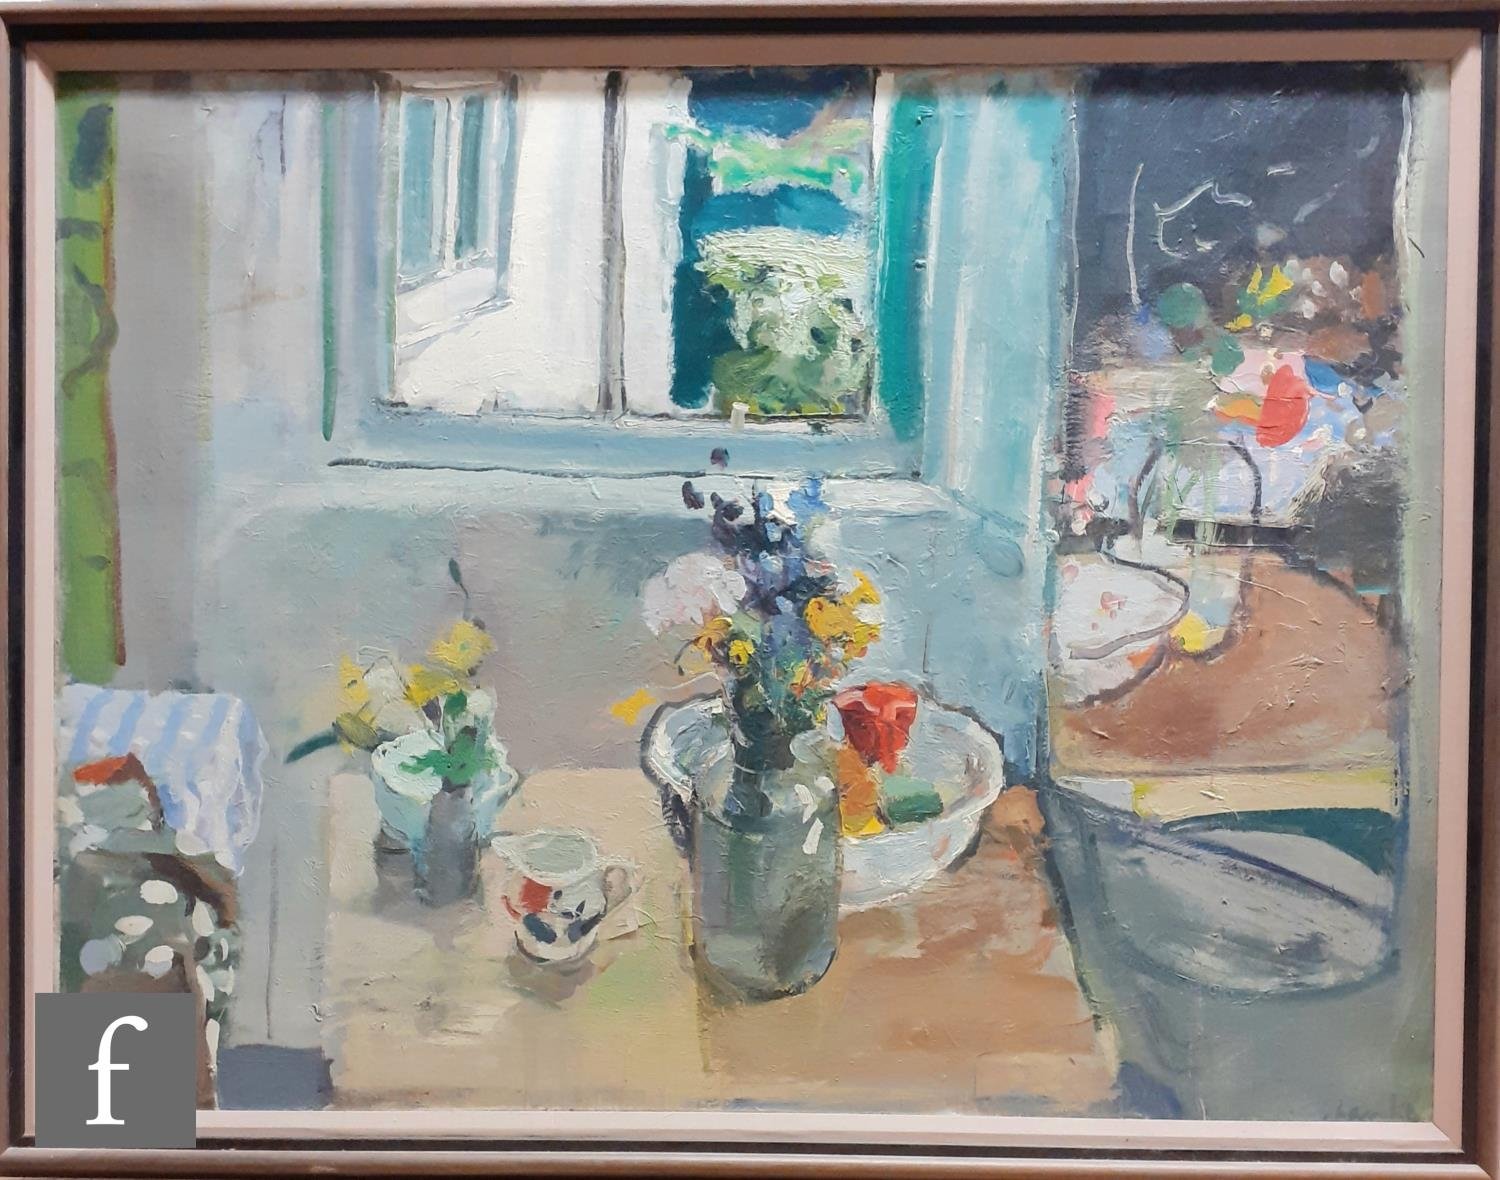 DUNCAN SHANKS, RSA, RSW (B. 1937) - A sunlit interior with vase of flowers and a bowl on a table top